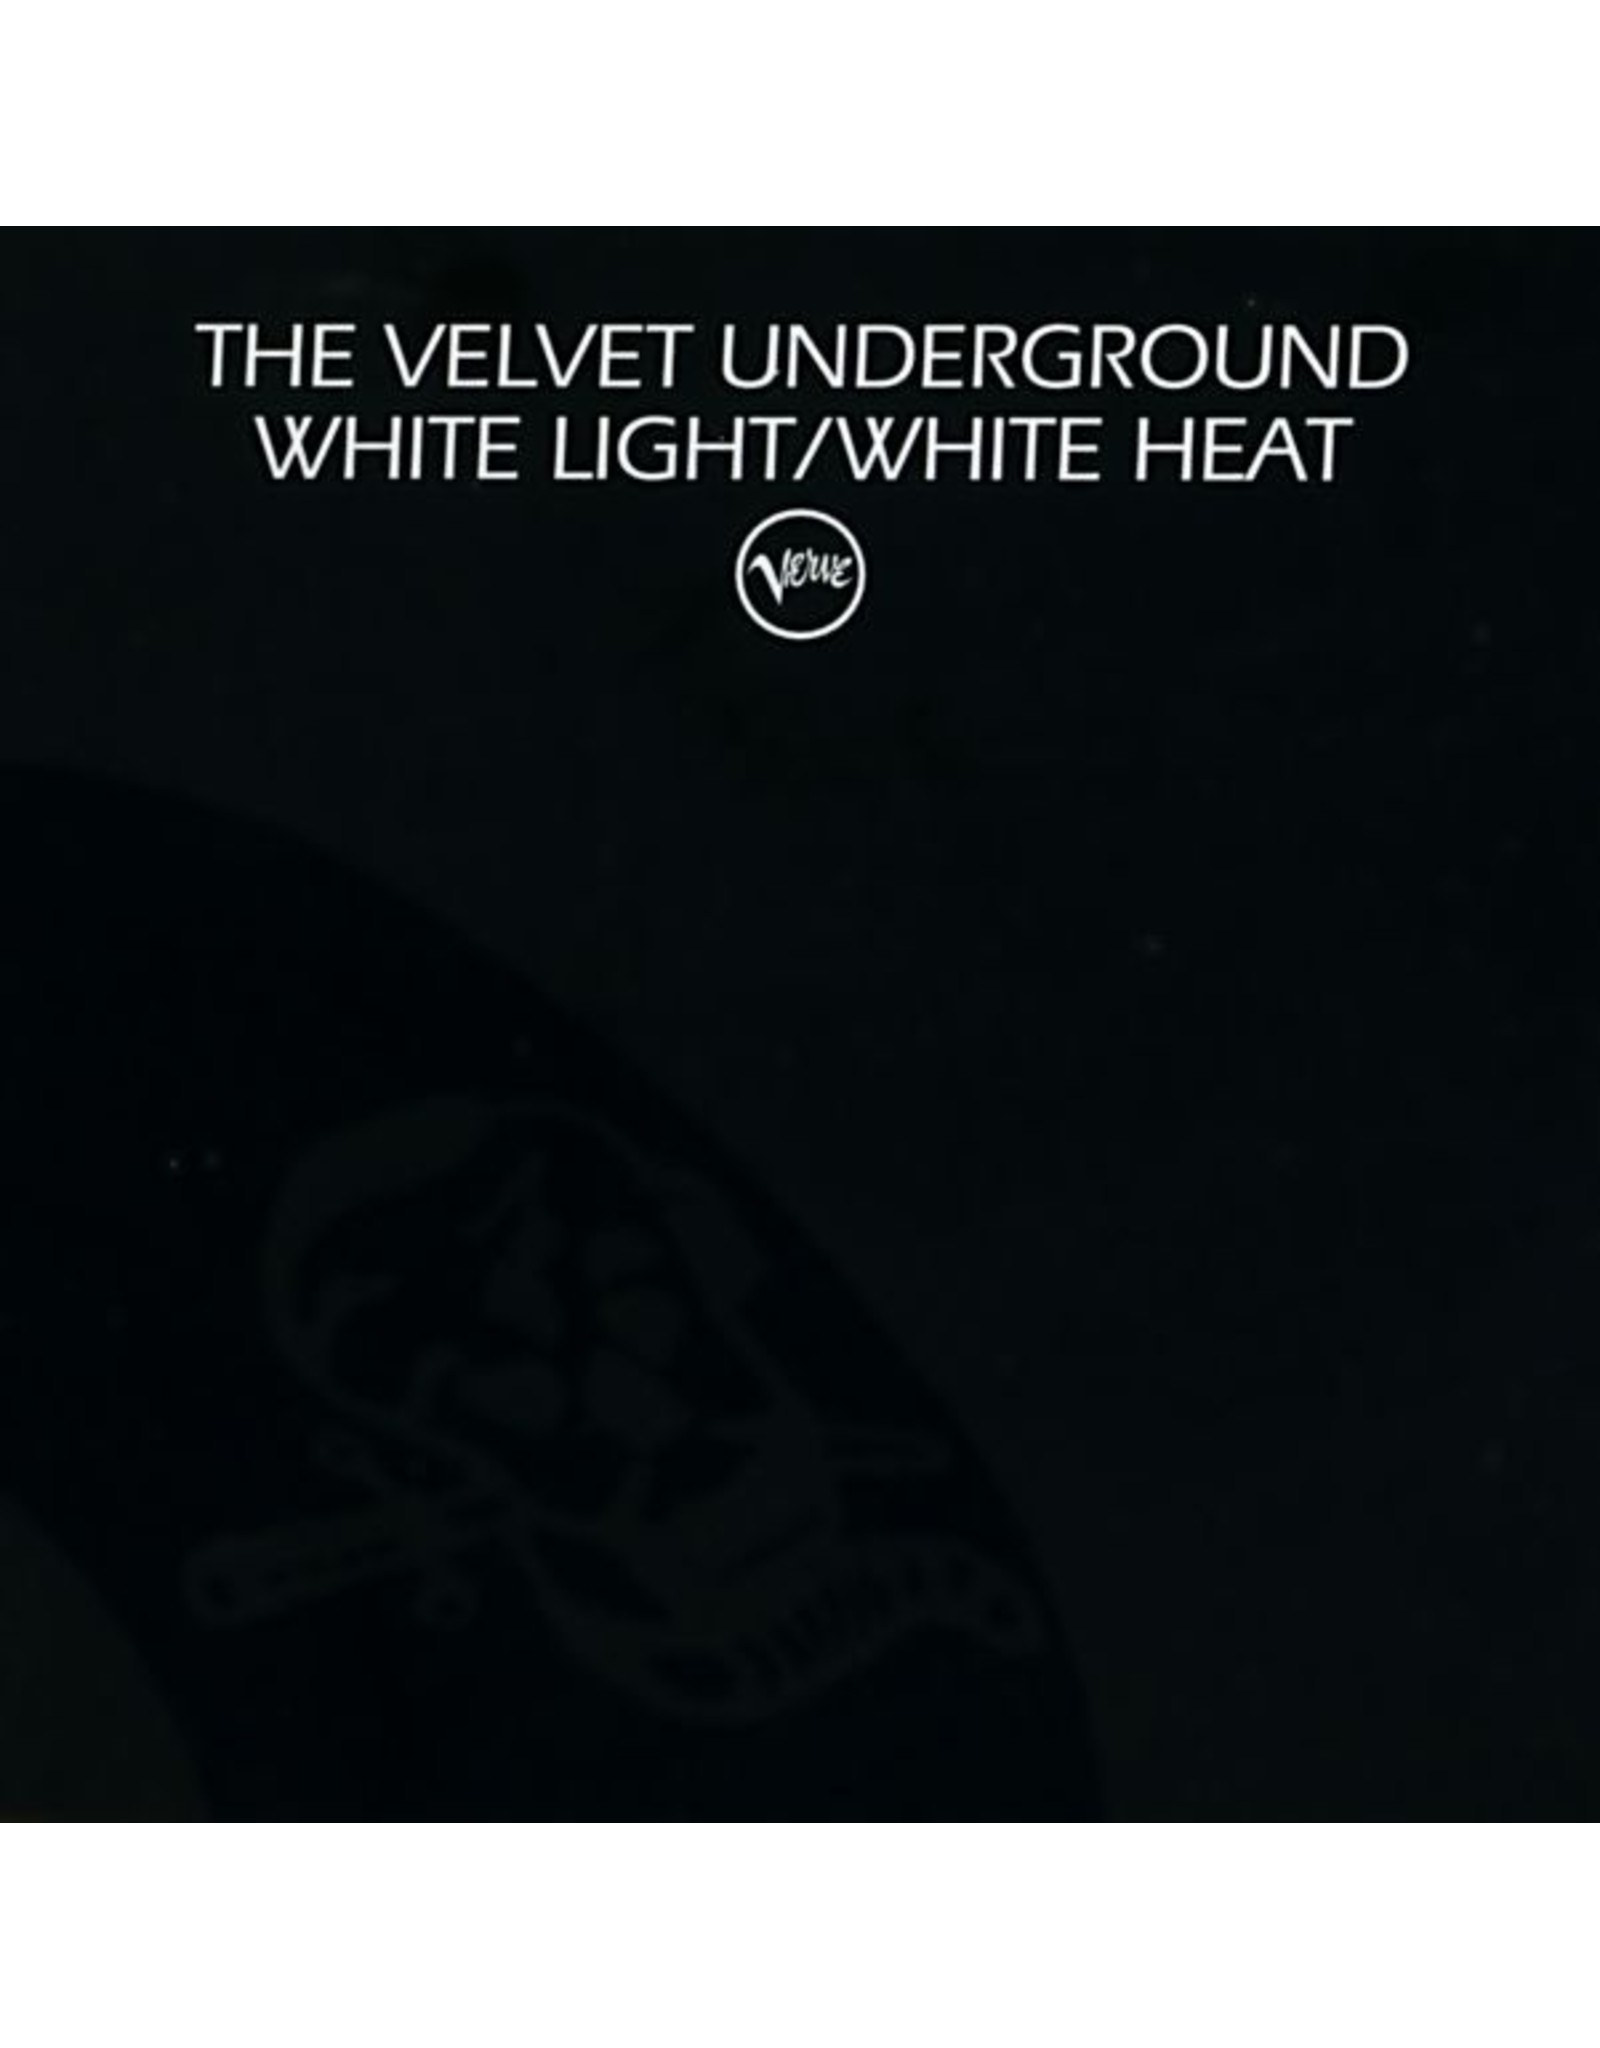 New Vinyl Velvet Underground - White Light/White Heat LP